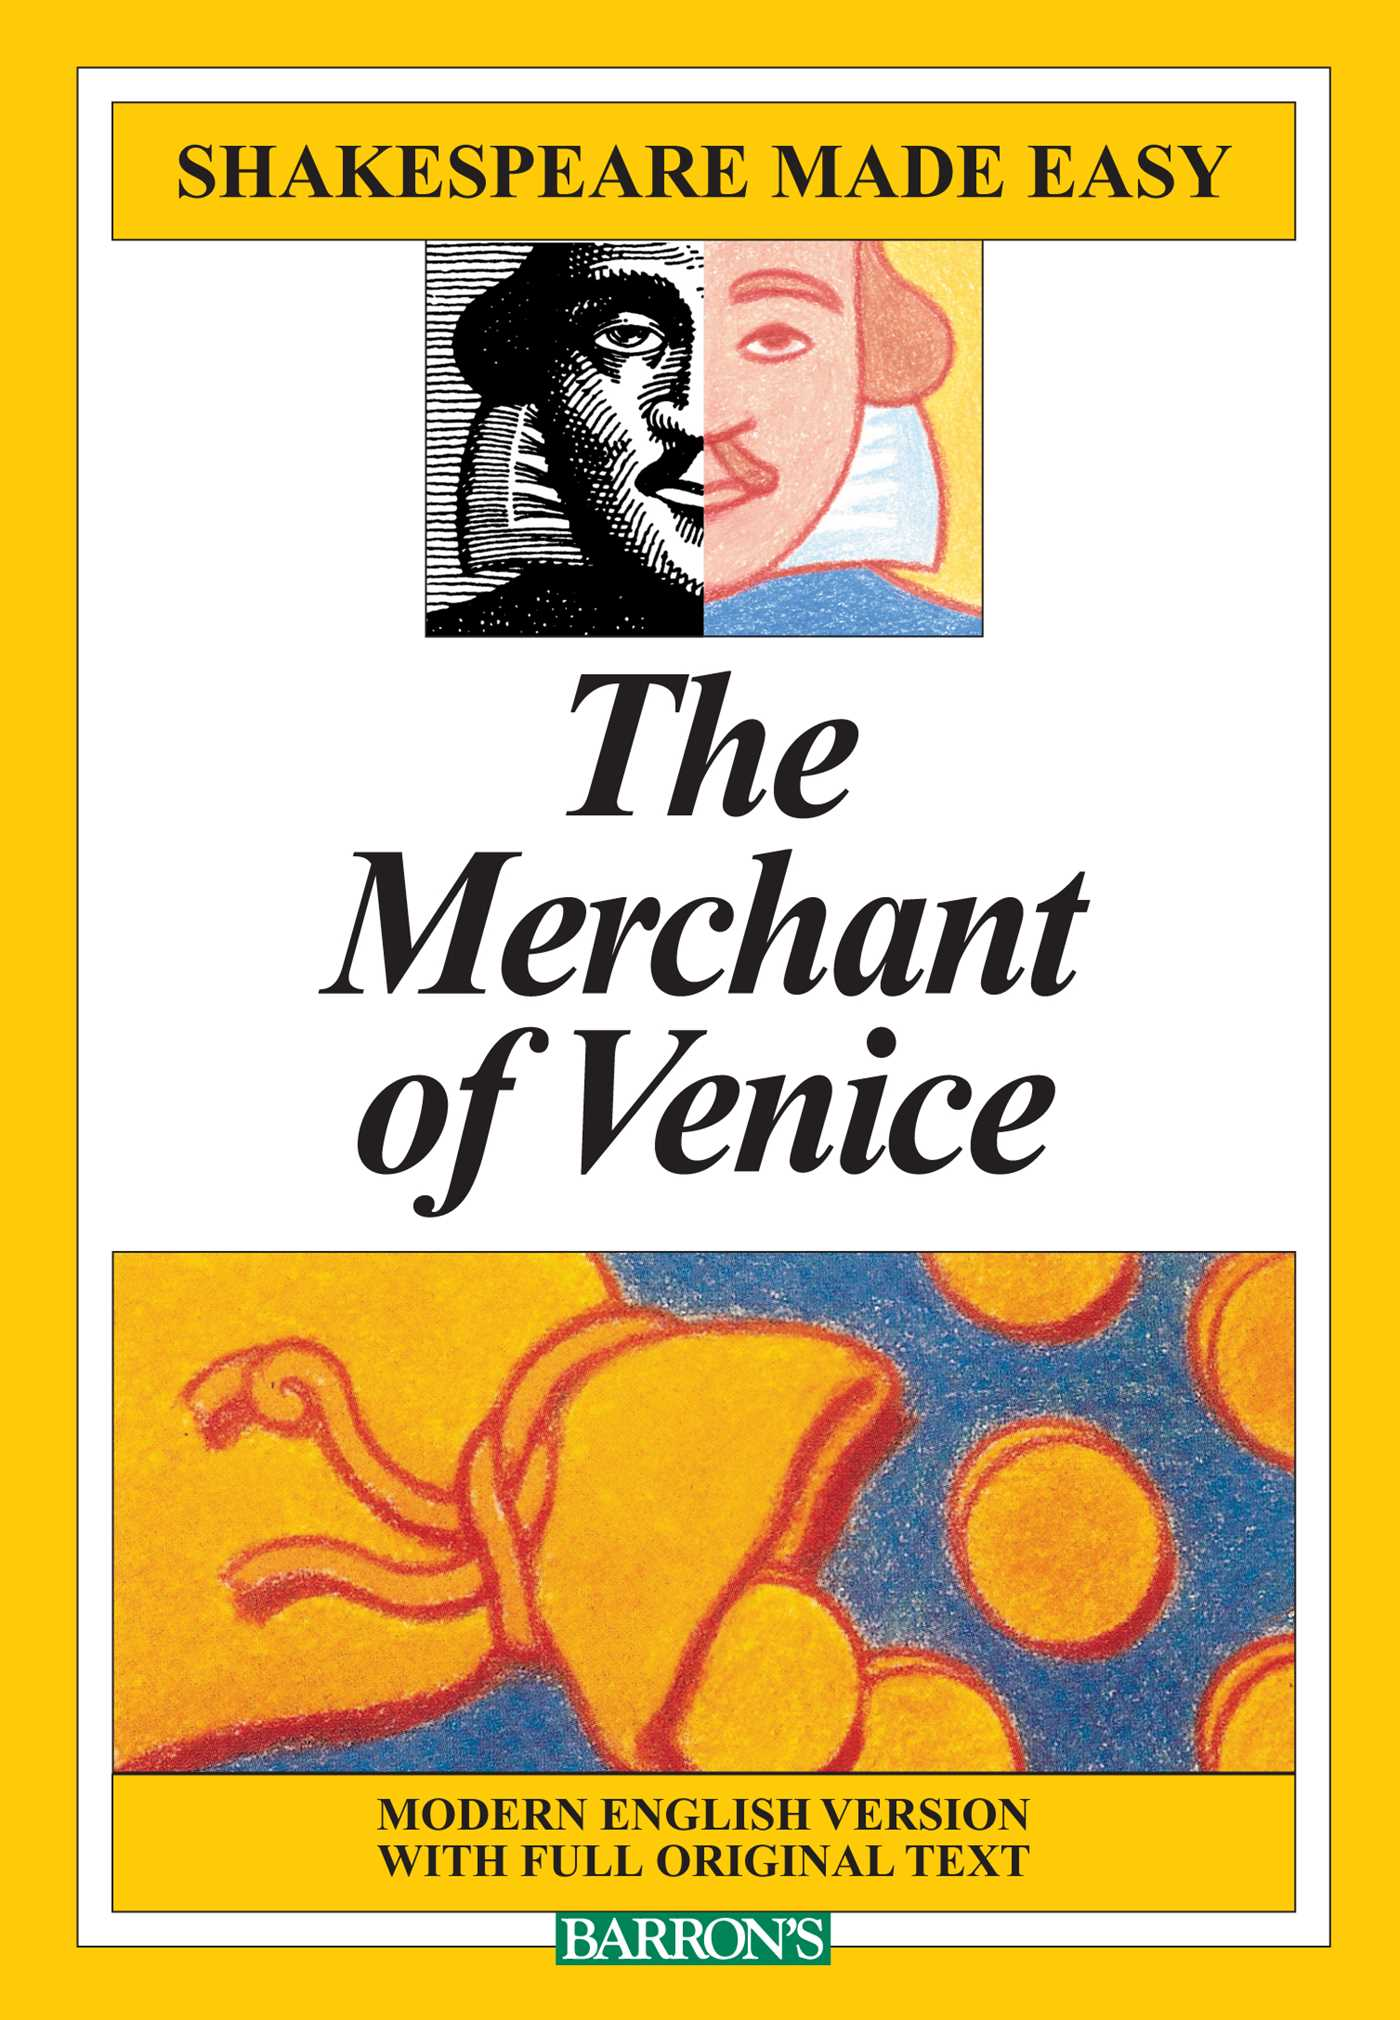 a comprehensive analysis of the merchant of venice by william shakespeare You just clipped your first slide clipping is a handy way to collect important slides you want to go back to later now customize the name of a clipboard to store your clips.